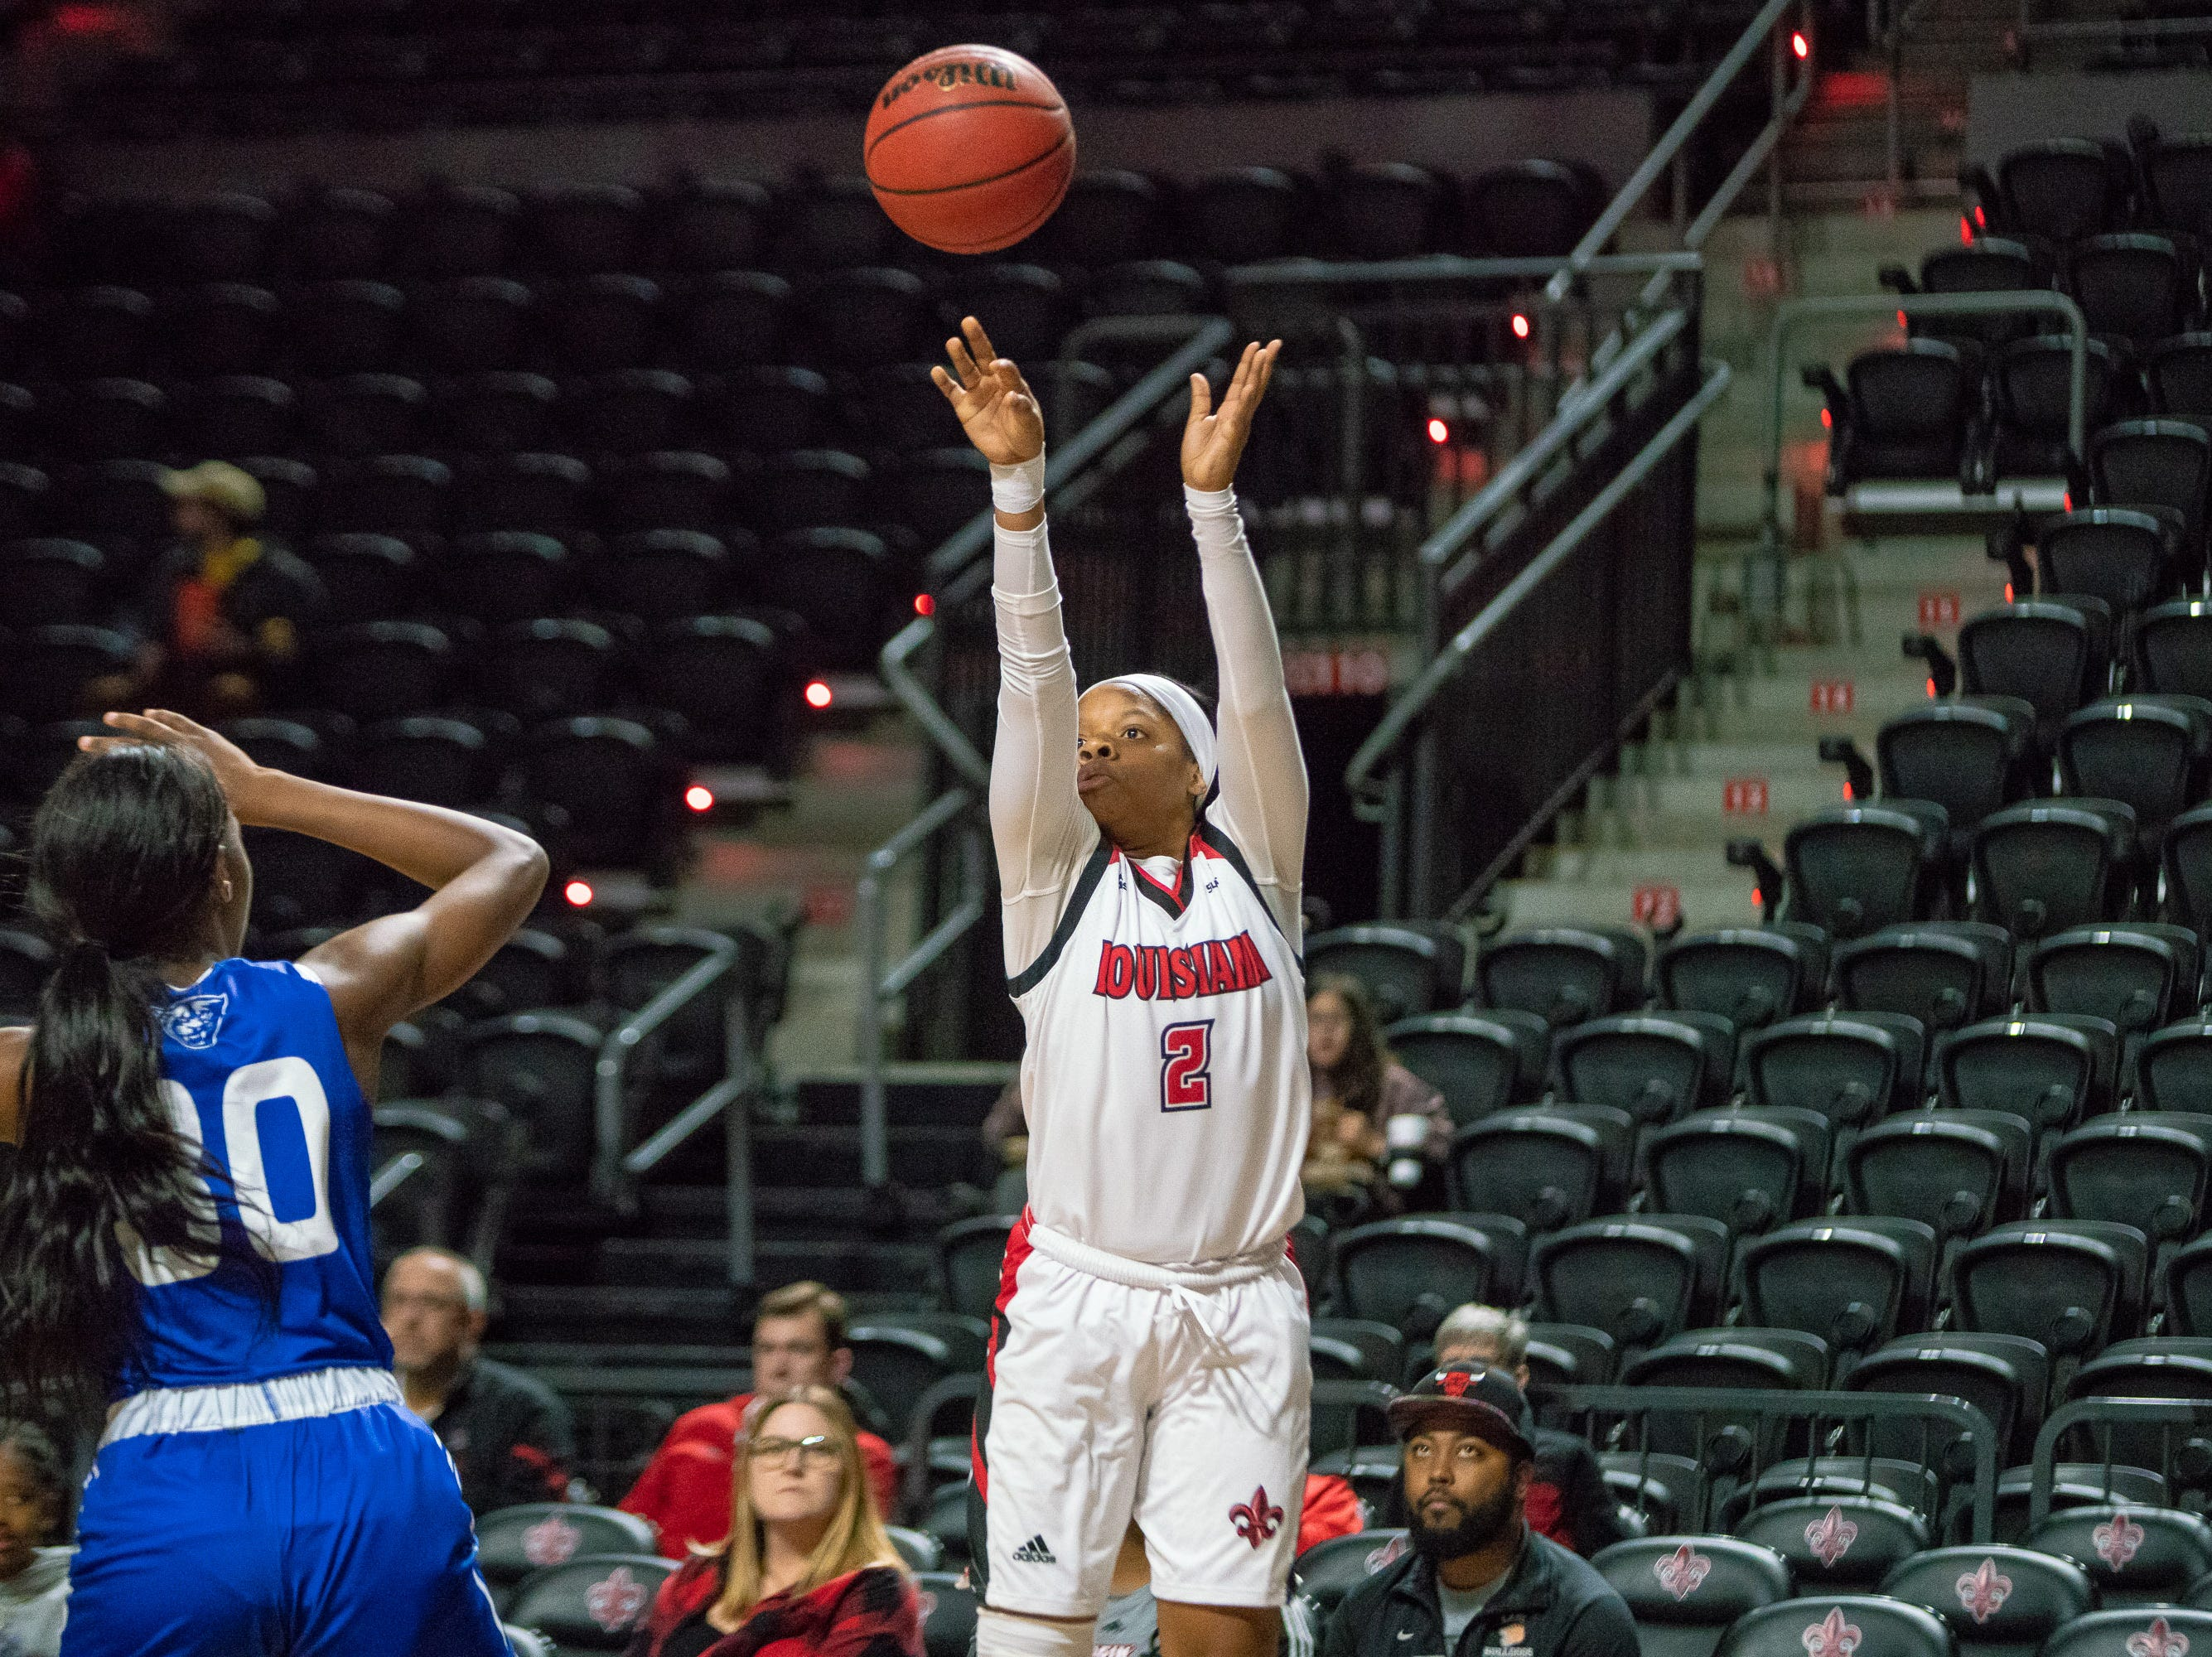 UL's Brandi Williams shoots to score as the Ragin' Cajuns play against the Georgia State Panthers at the Cajundome on January 10, 2019.